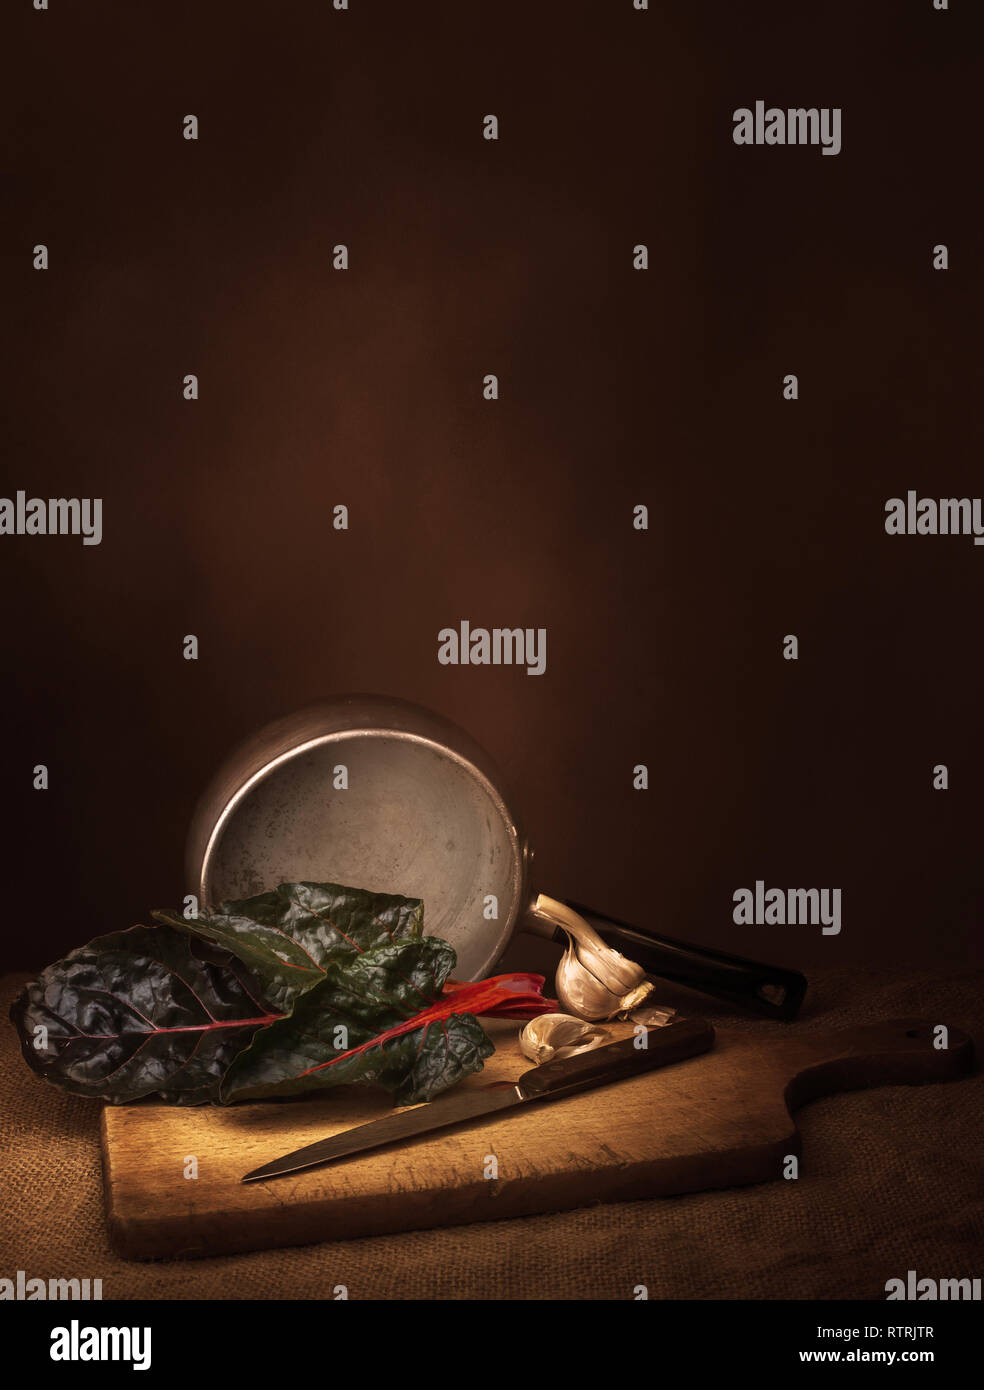 Ruby aka Swiss chard vegetable food preparation, still life with garlic. Chiaroscuro style light painting. Beta vulgaris. Vertical composition. - Stock Image